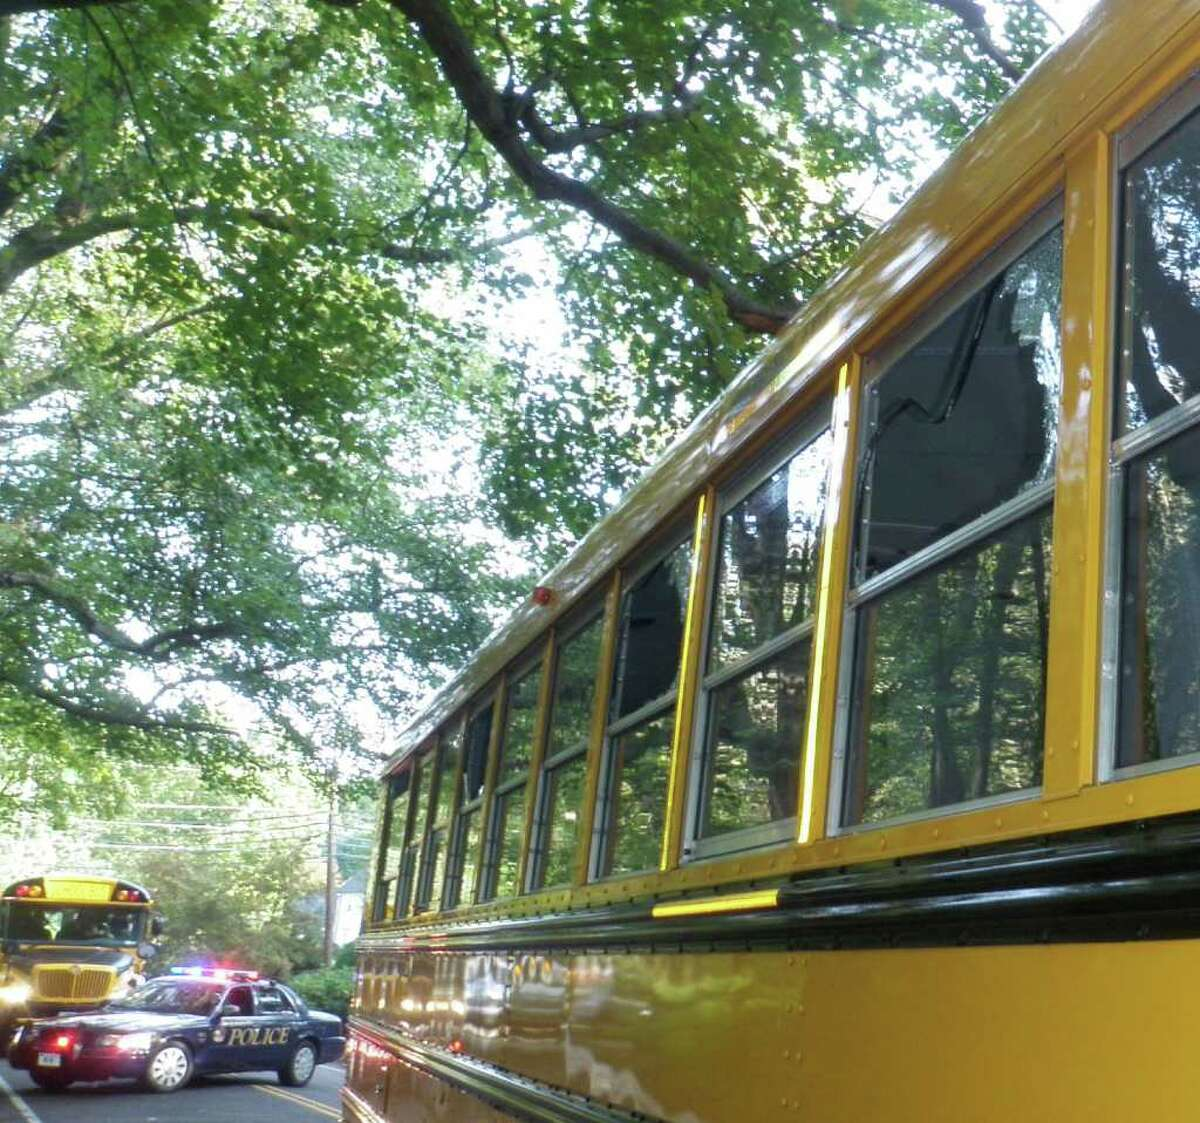 Three windows on this school bus were shattered Monday morning when it struck a low-hanging tree branch on Lyons Plains Road in Westport. Eight Weston students suffered minor injuries from the flying glass, but no one was hospitalized.